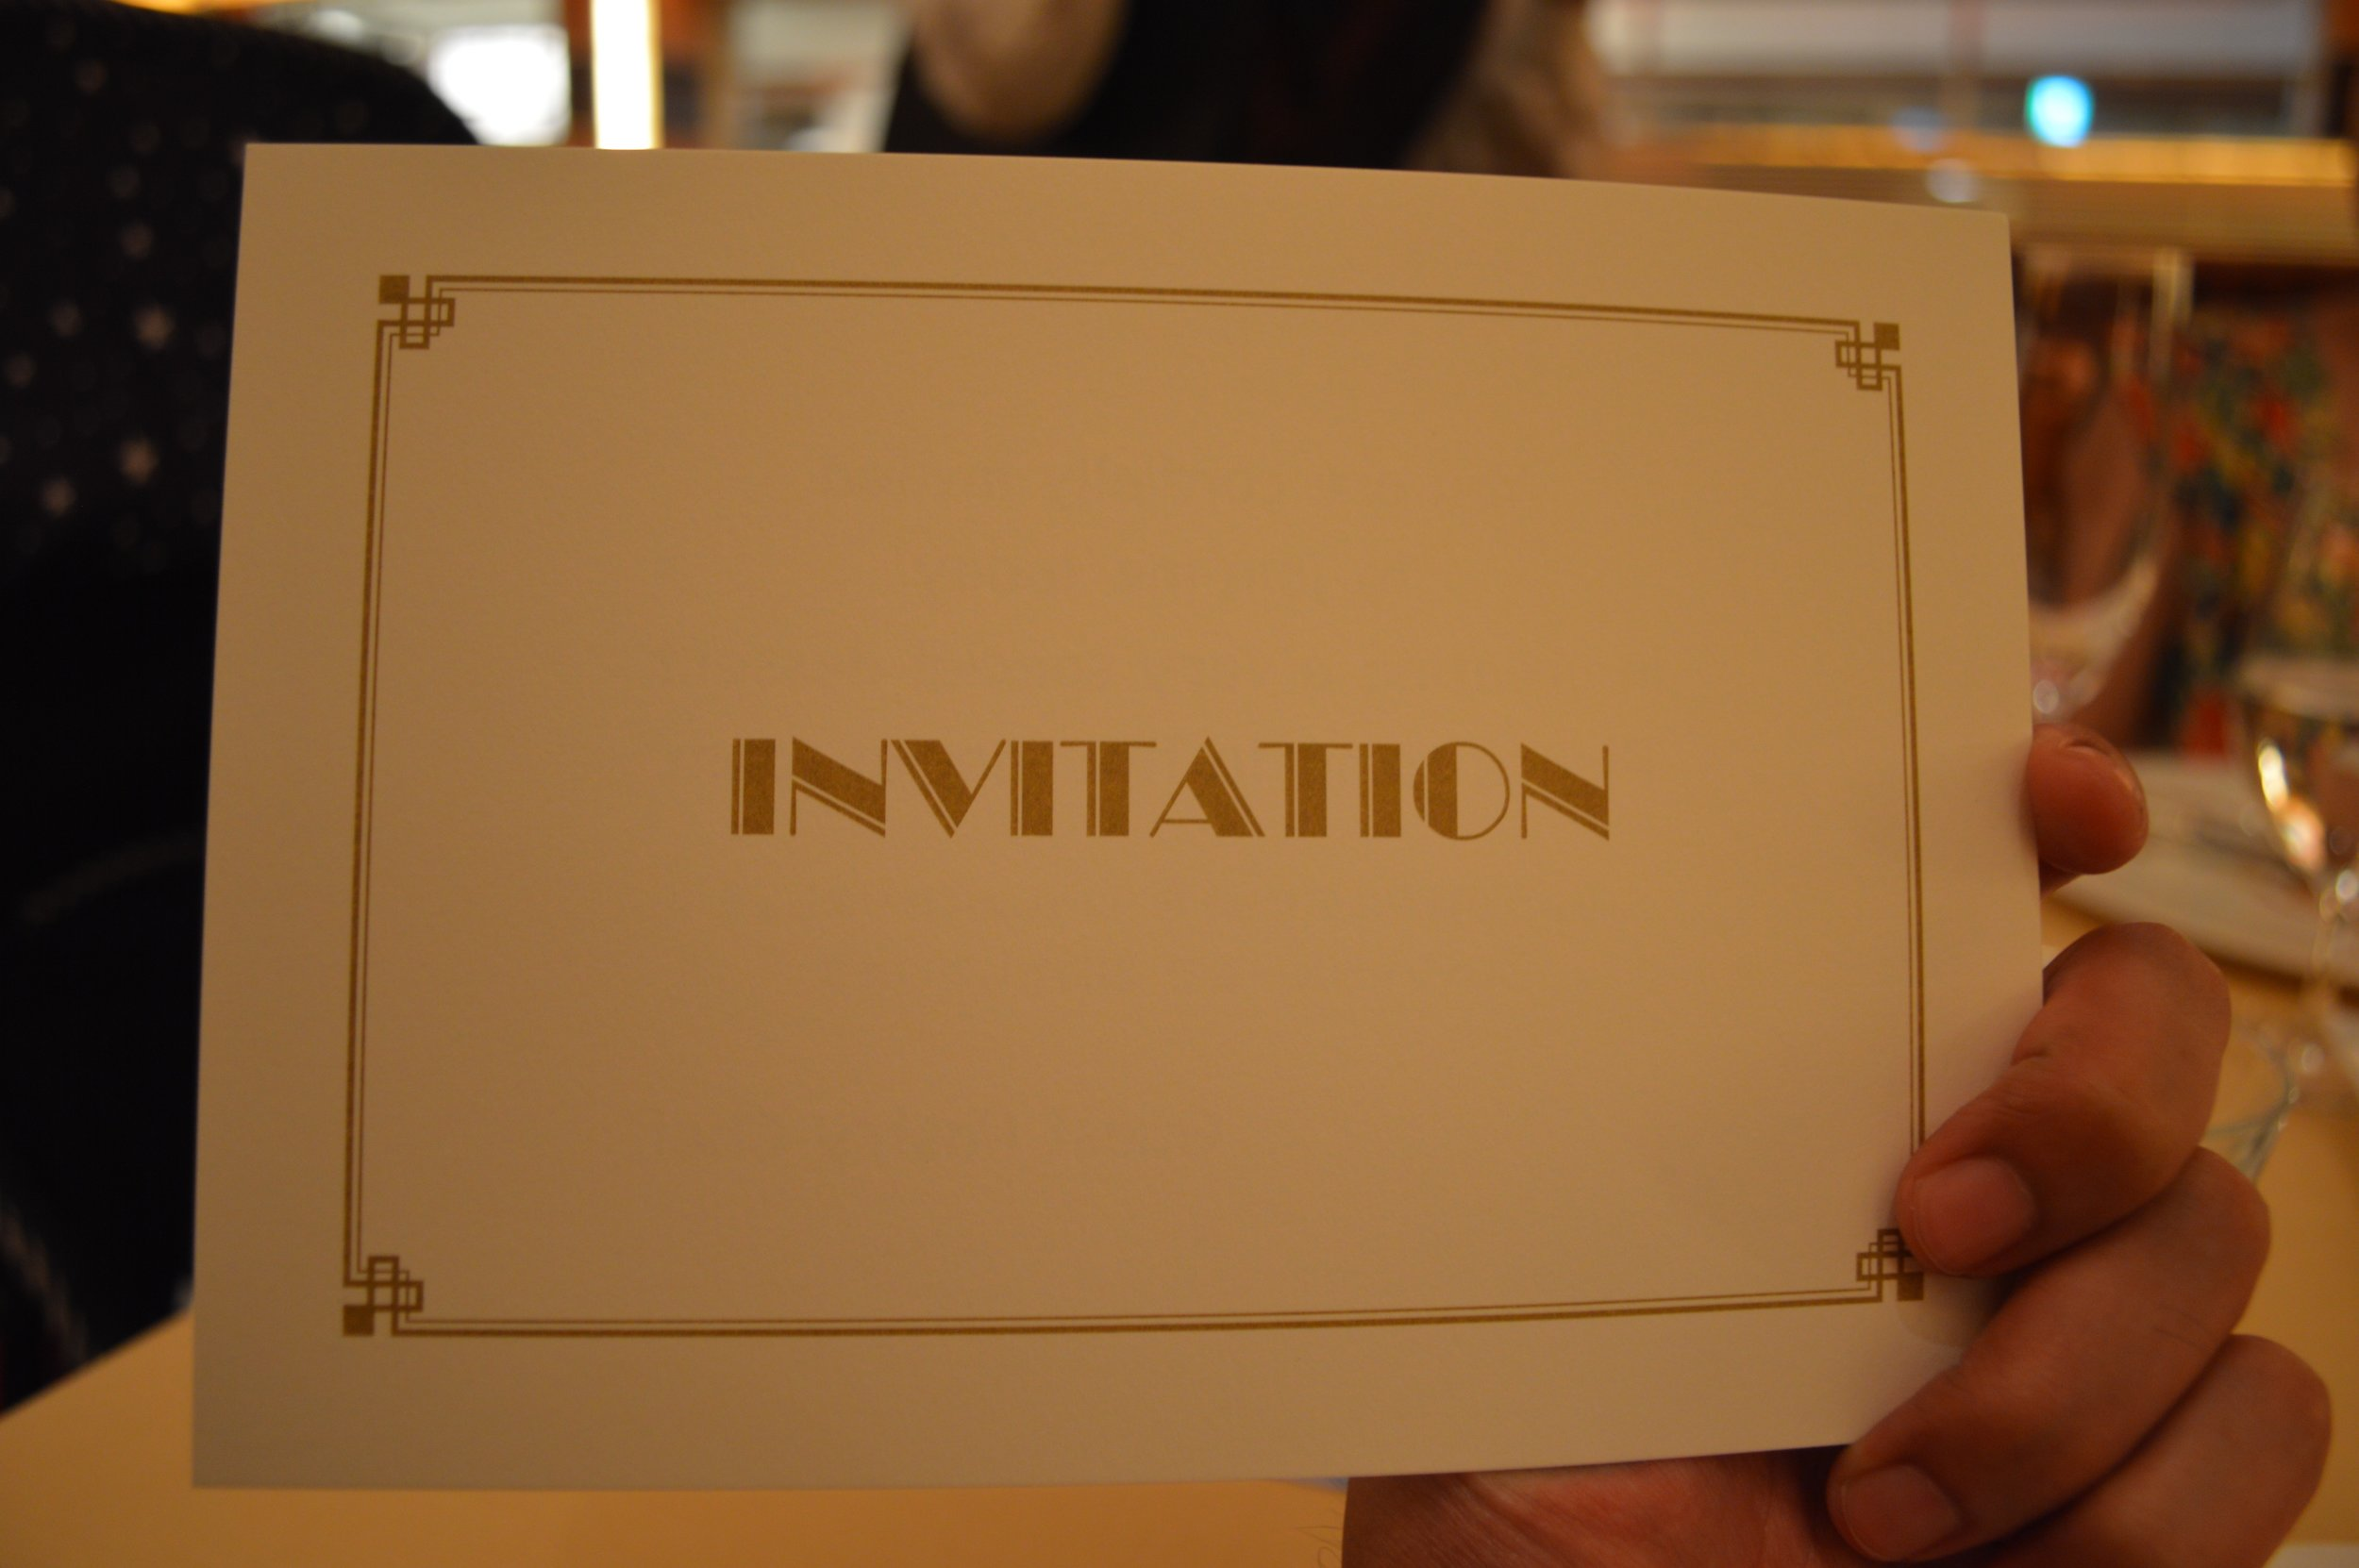 We received an invitation halfway through our course dinner